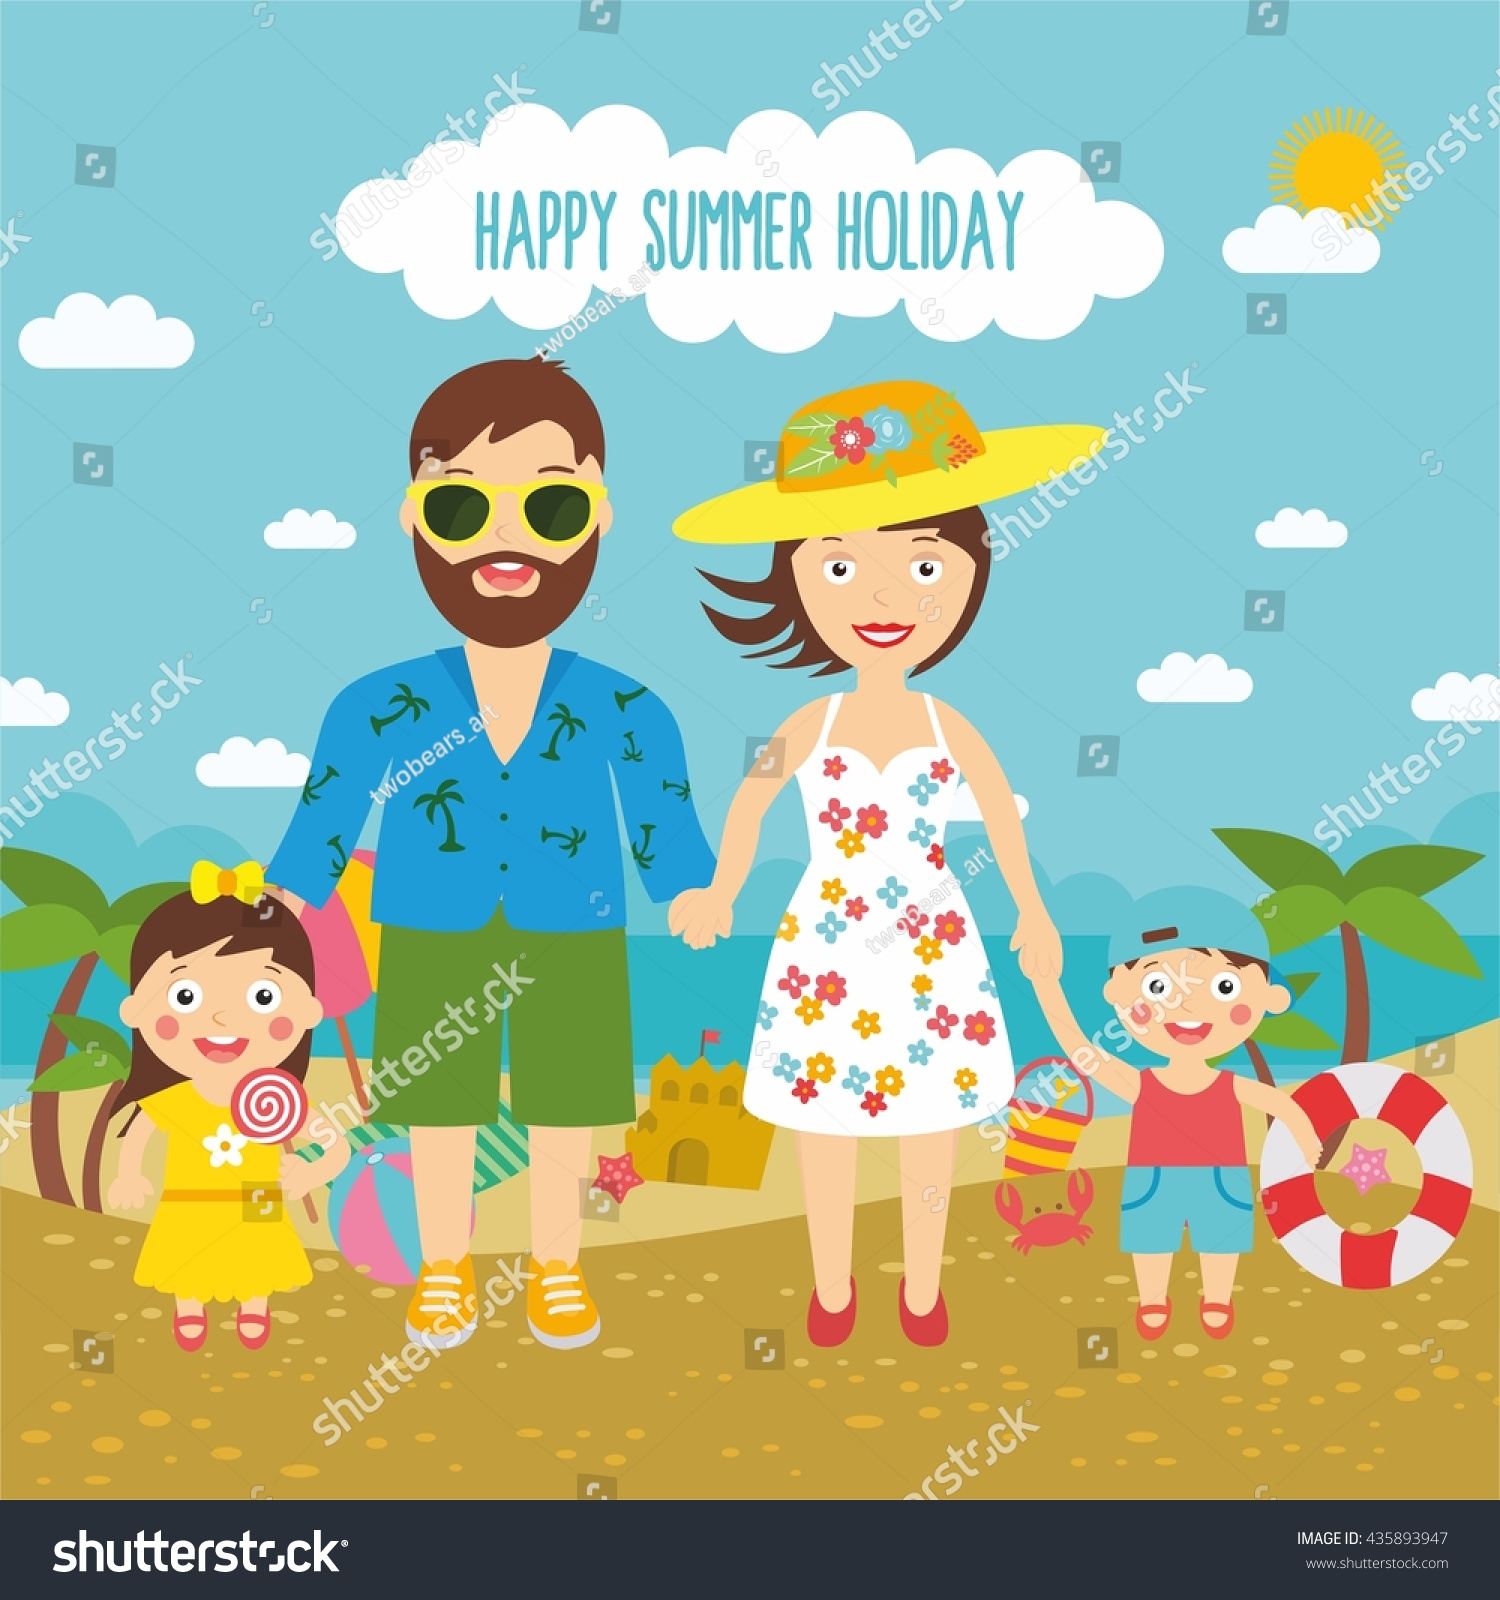 Happy Summer Holidays Cute Cartoon Family On The Beach Father Mother And Child